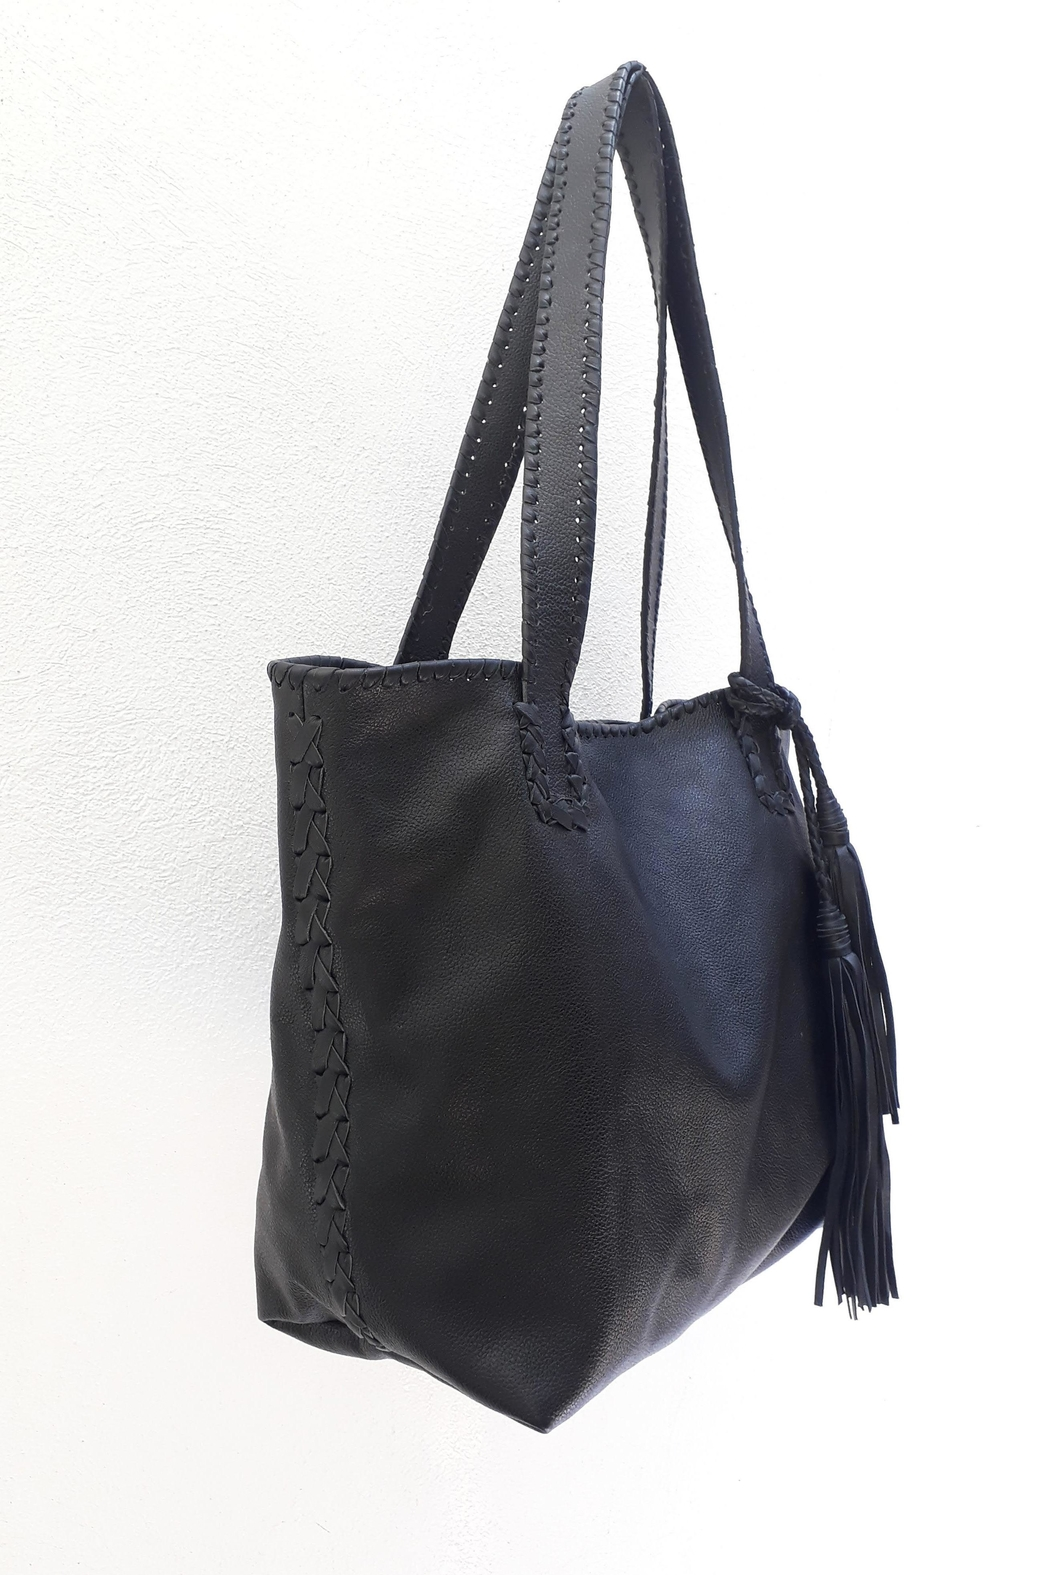 Areias Leather Black Tote Bag - Front Full Image